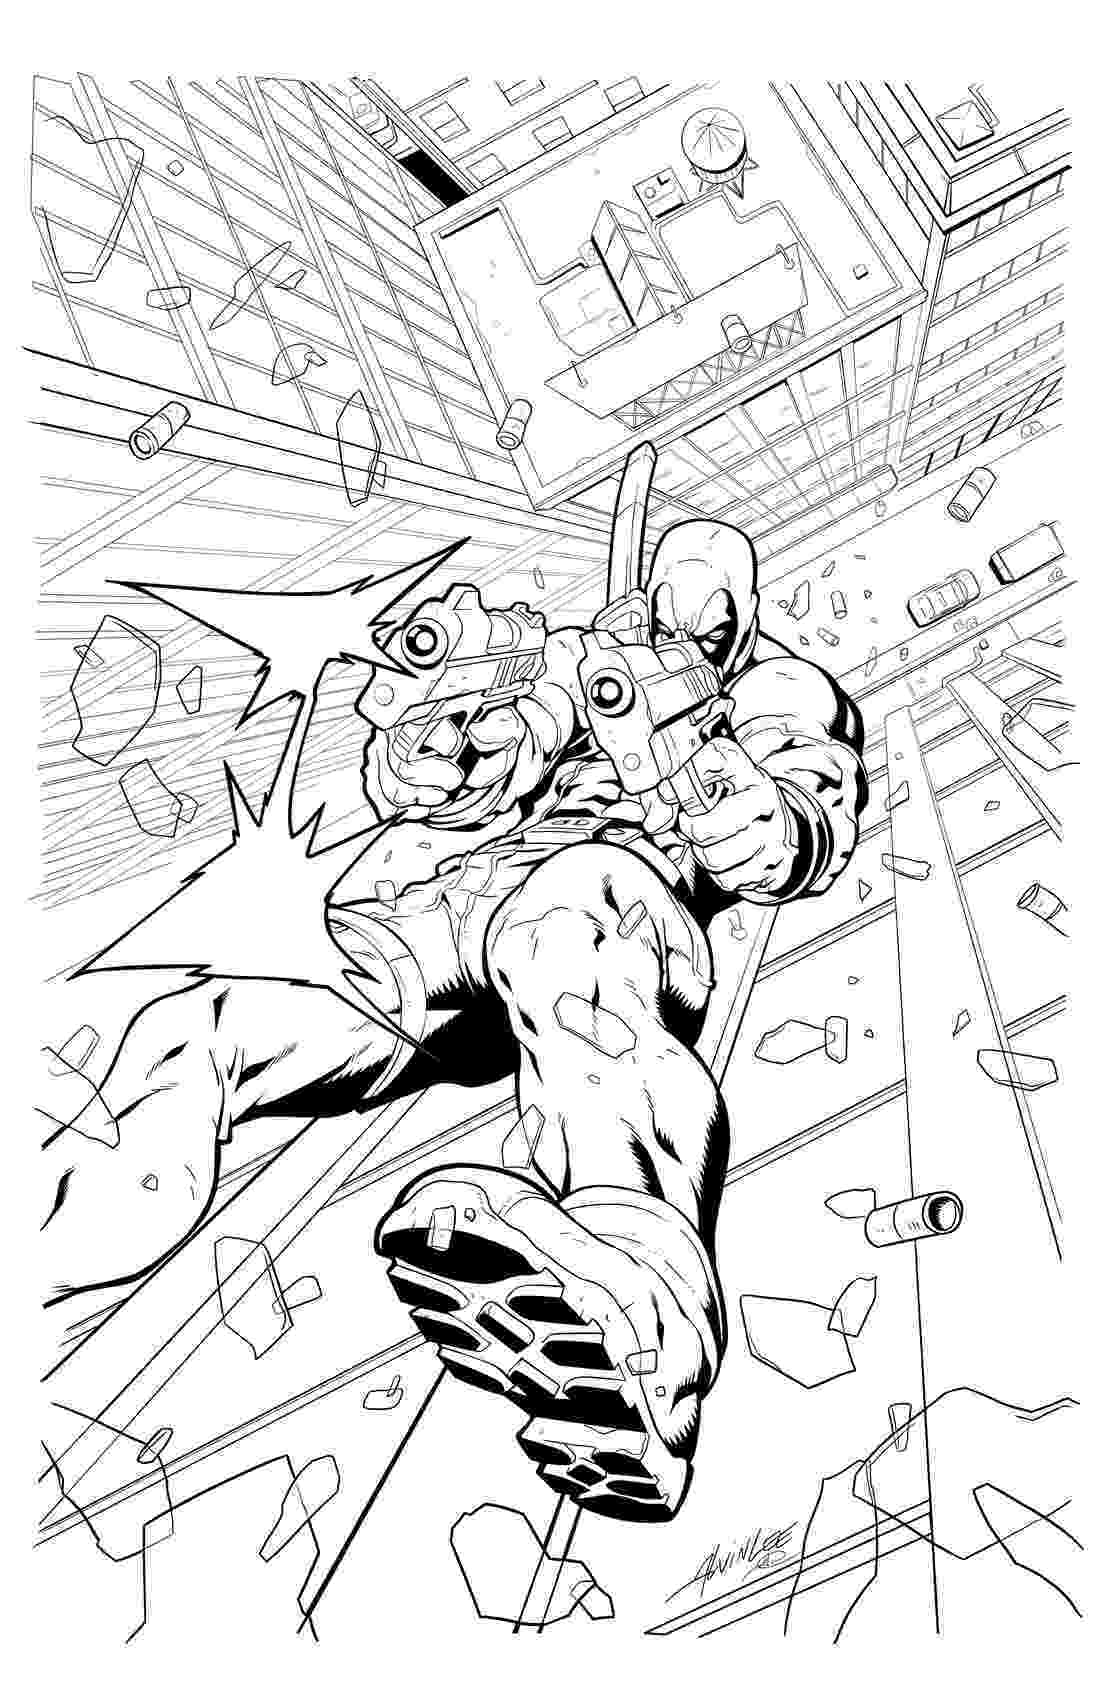 printable deadpool coloring pages free printable deadpool coloring pages for kids printable deadpool coloring pages